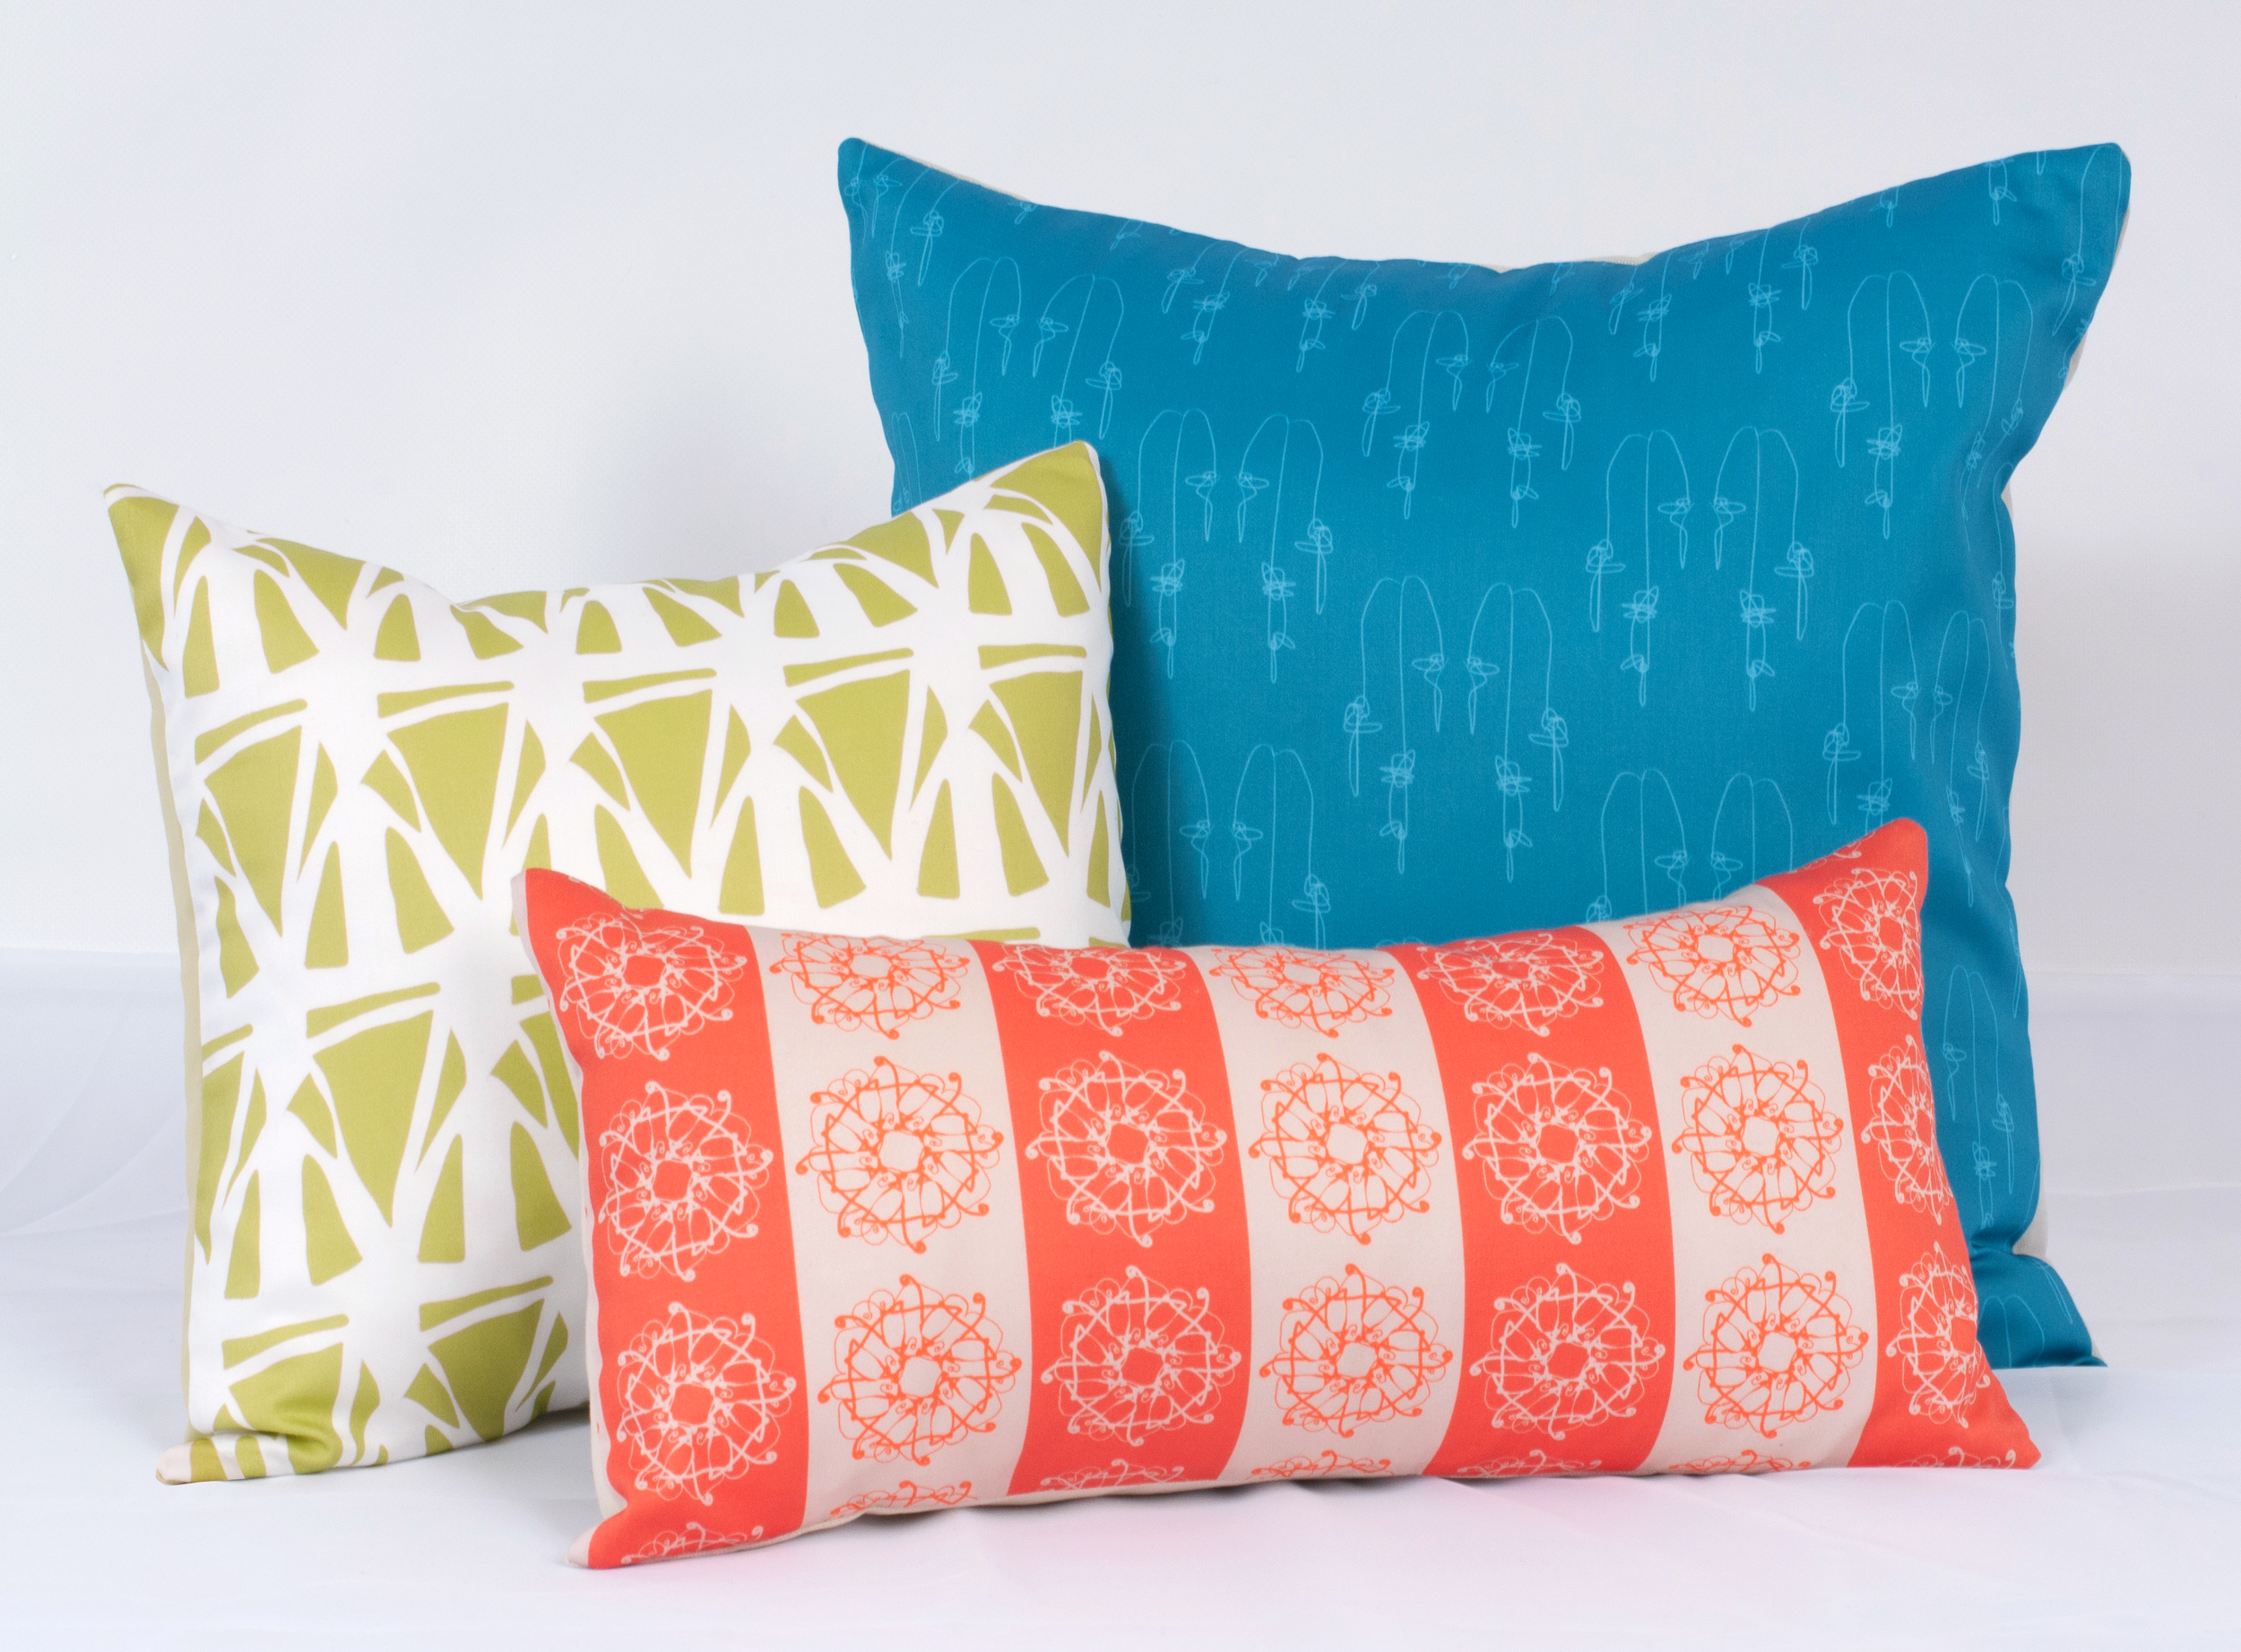 Handmade Pillow Covers (and inserts), various sizes, all original drawings and designs